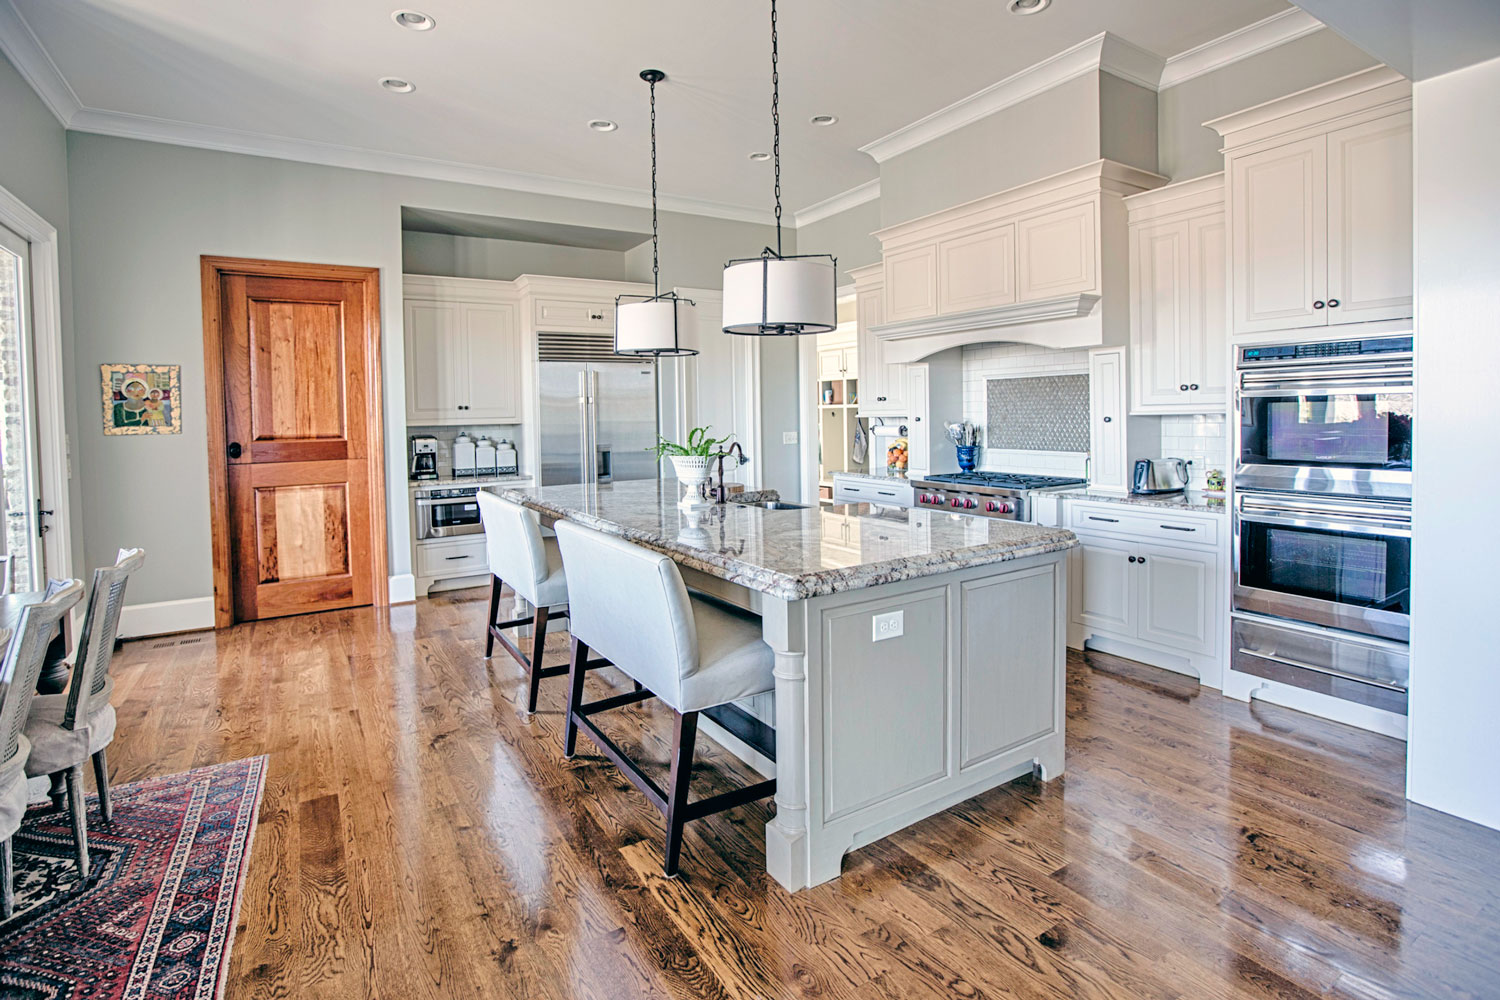 The kitchen island contains a stainless steel farmers sink.